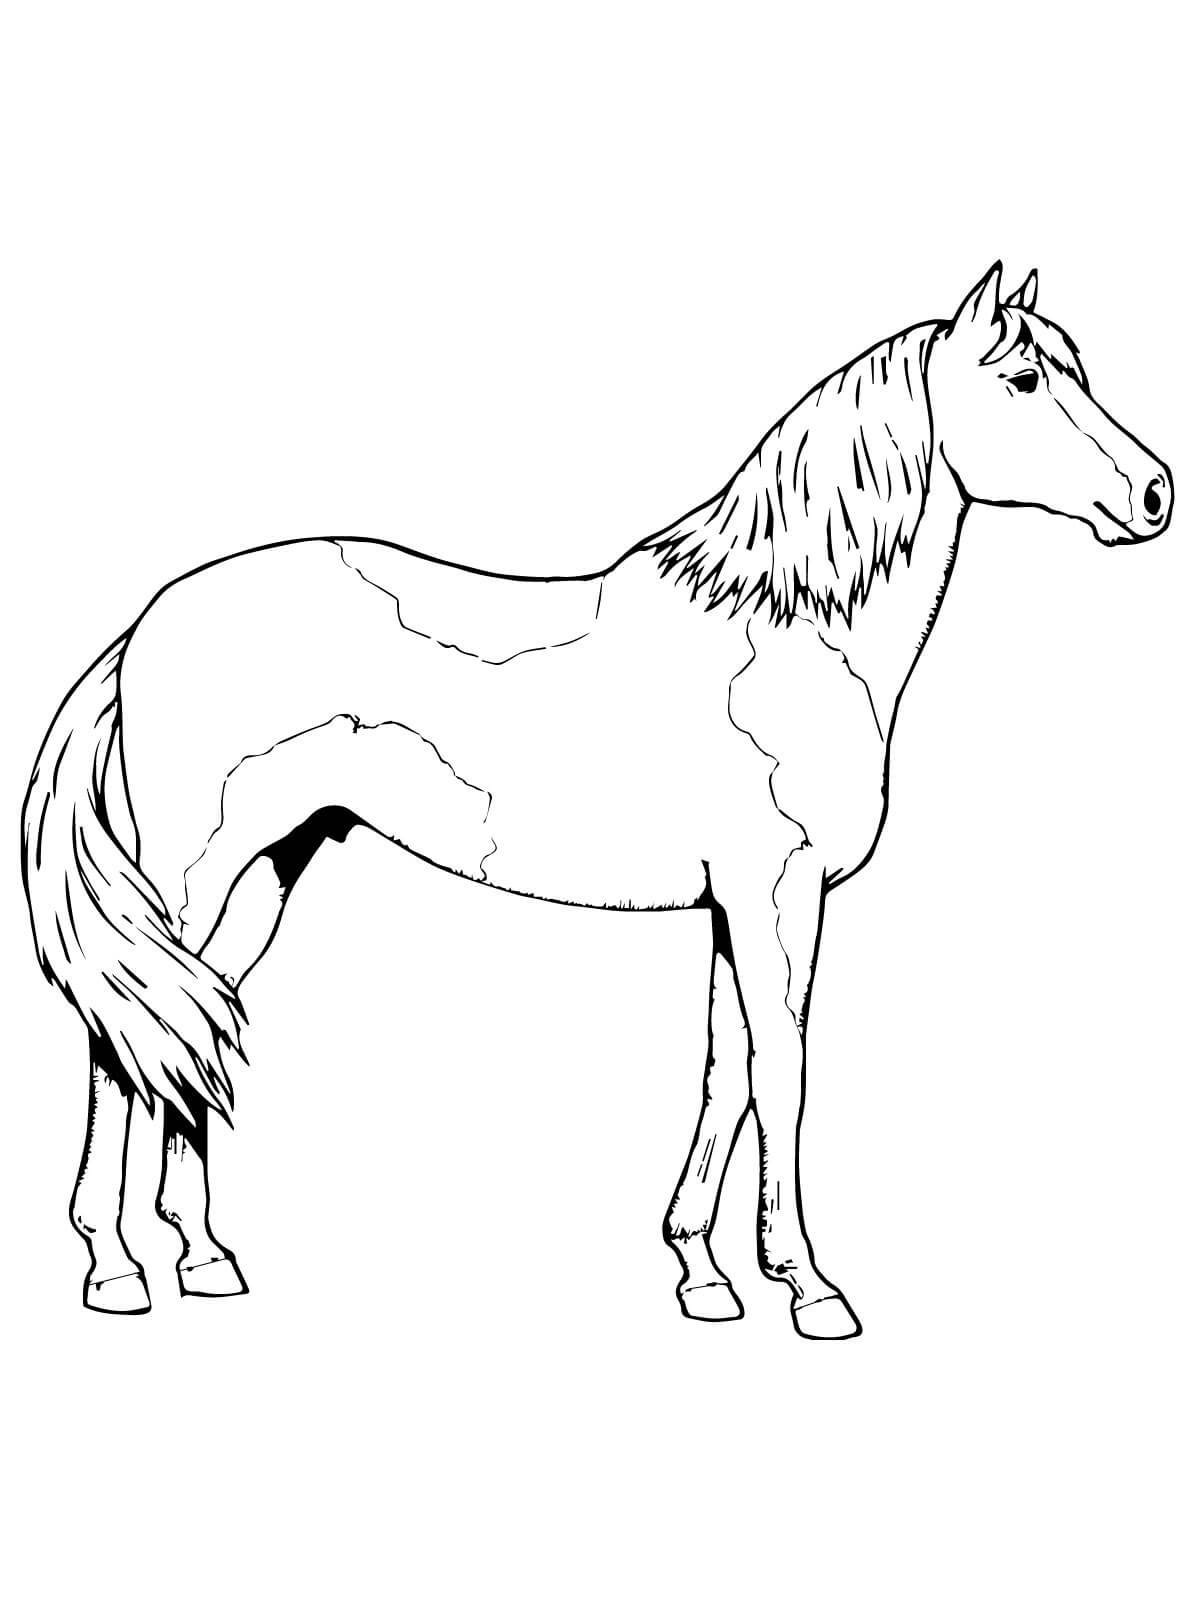 coloring picture of horse horse coloring pages to download and print for free coloring picture horse of